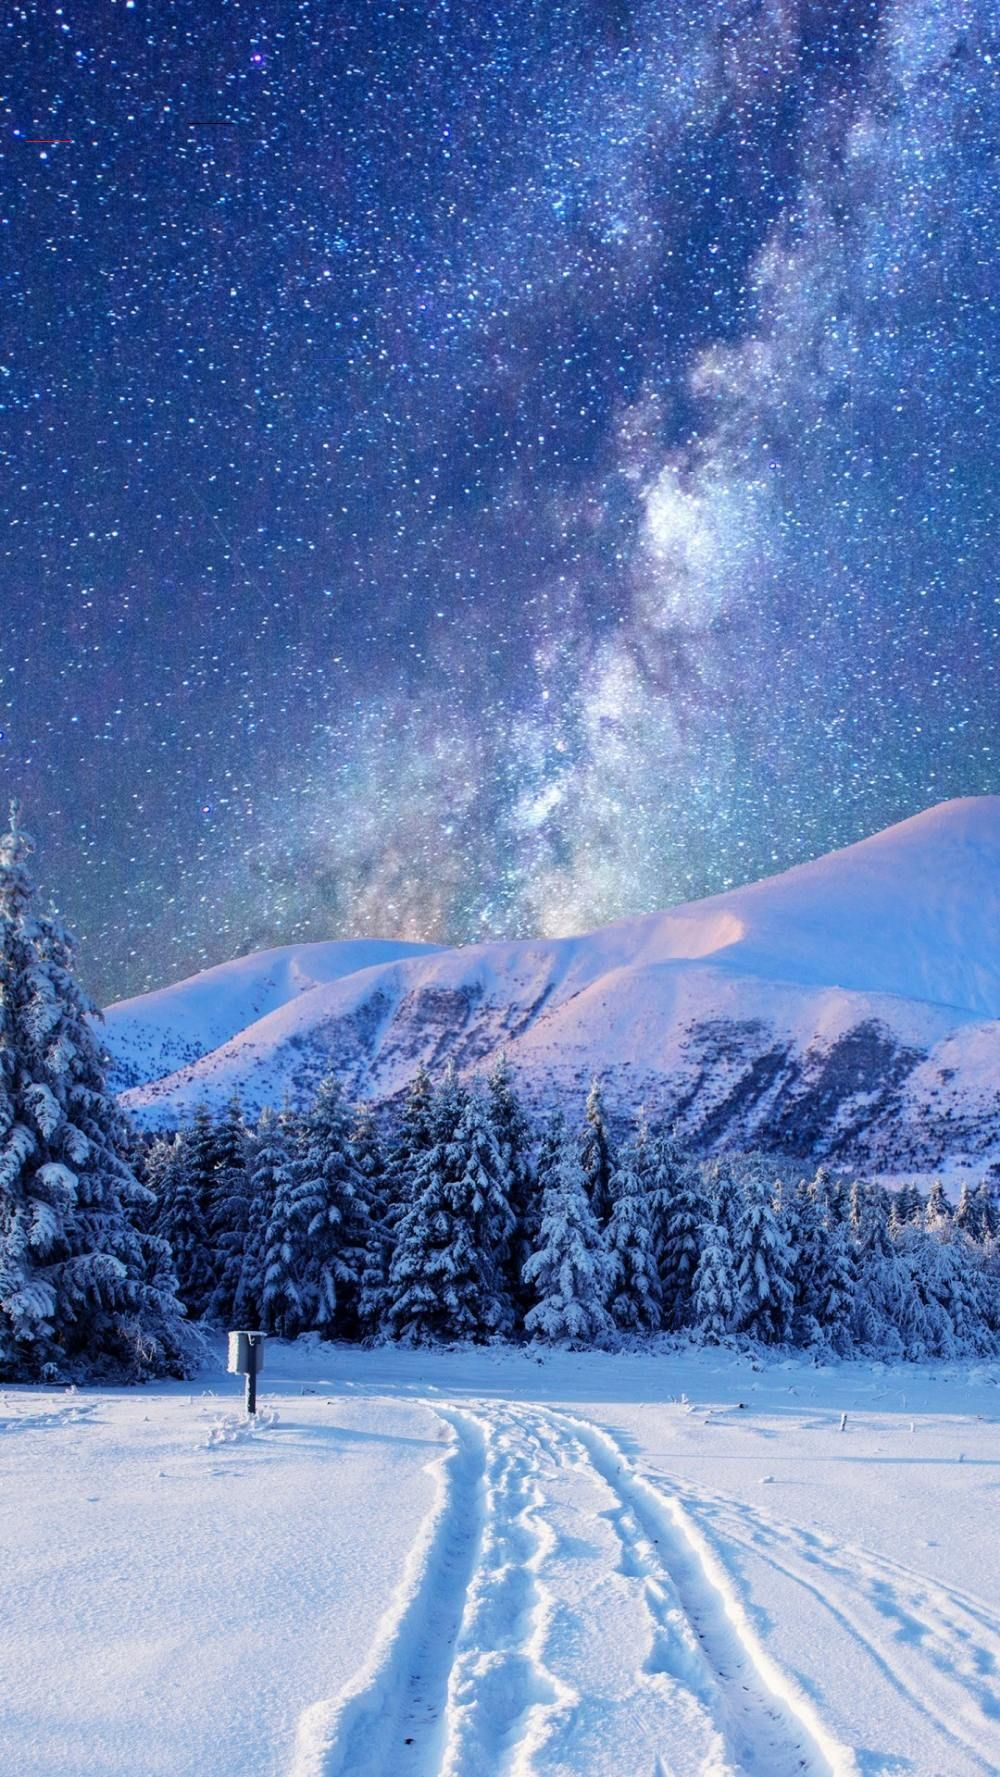 Best Winter Iphone Wallpapers In 2020 Winterwallpaper All Dressed Up In Your Winter Gear The Iphone Wallpaper Winter Winter Wallpaper Hd Winter Landscape